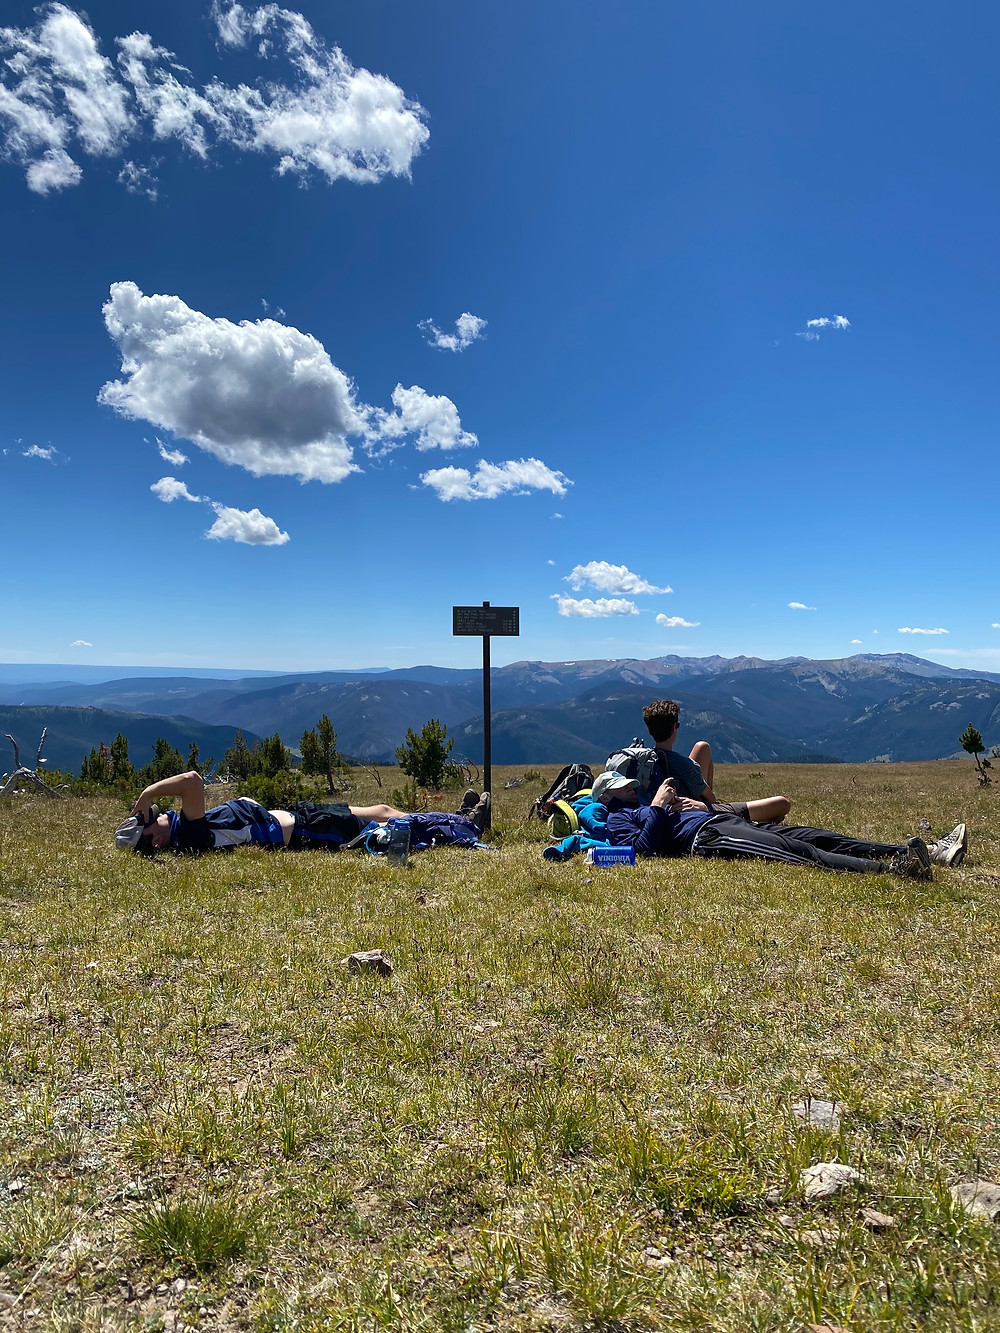 Brilliant blue skies give Sky Rim its name. Several hikers look exhausted lying on the grass at the top after reaching the lofty peak in Yellowstone National Park